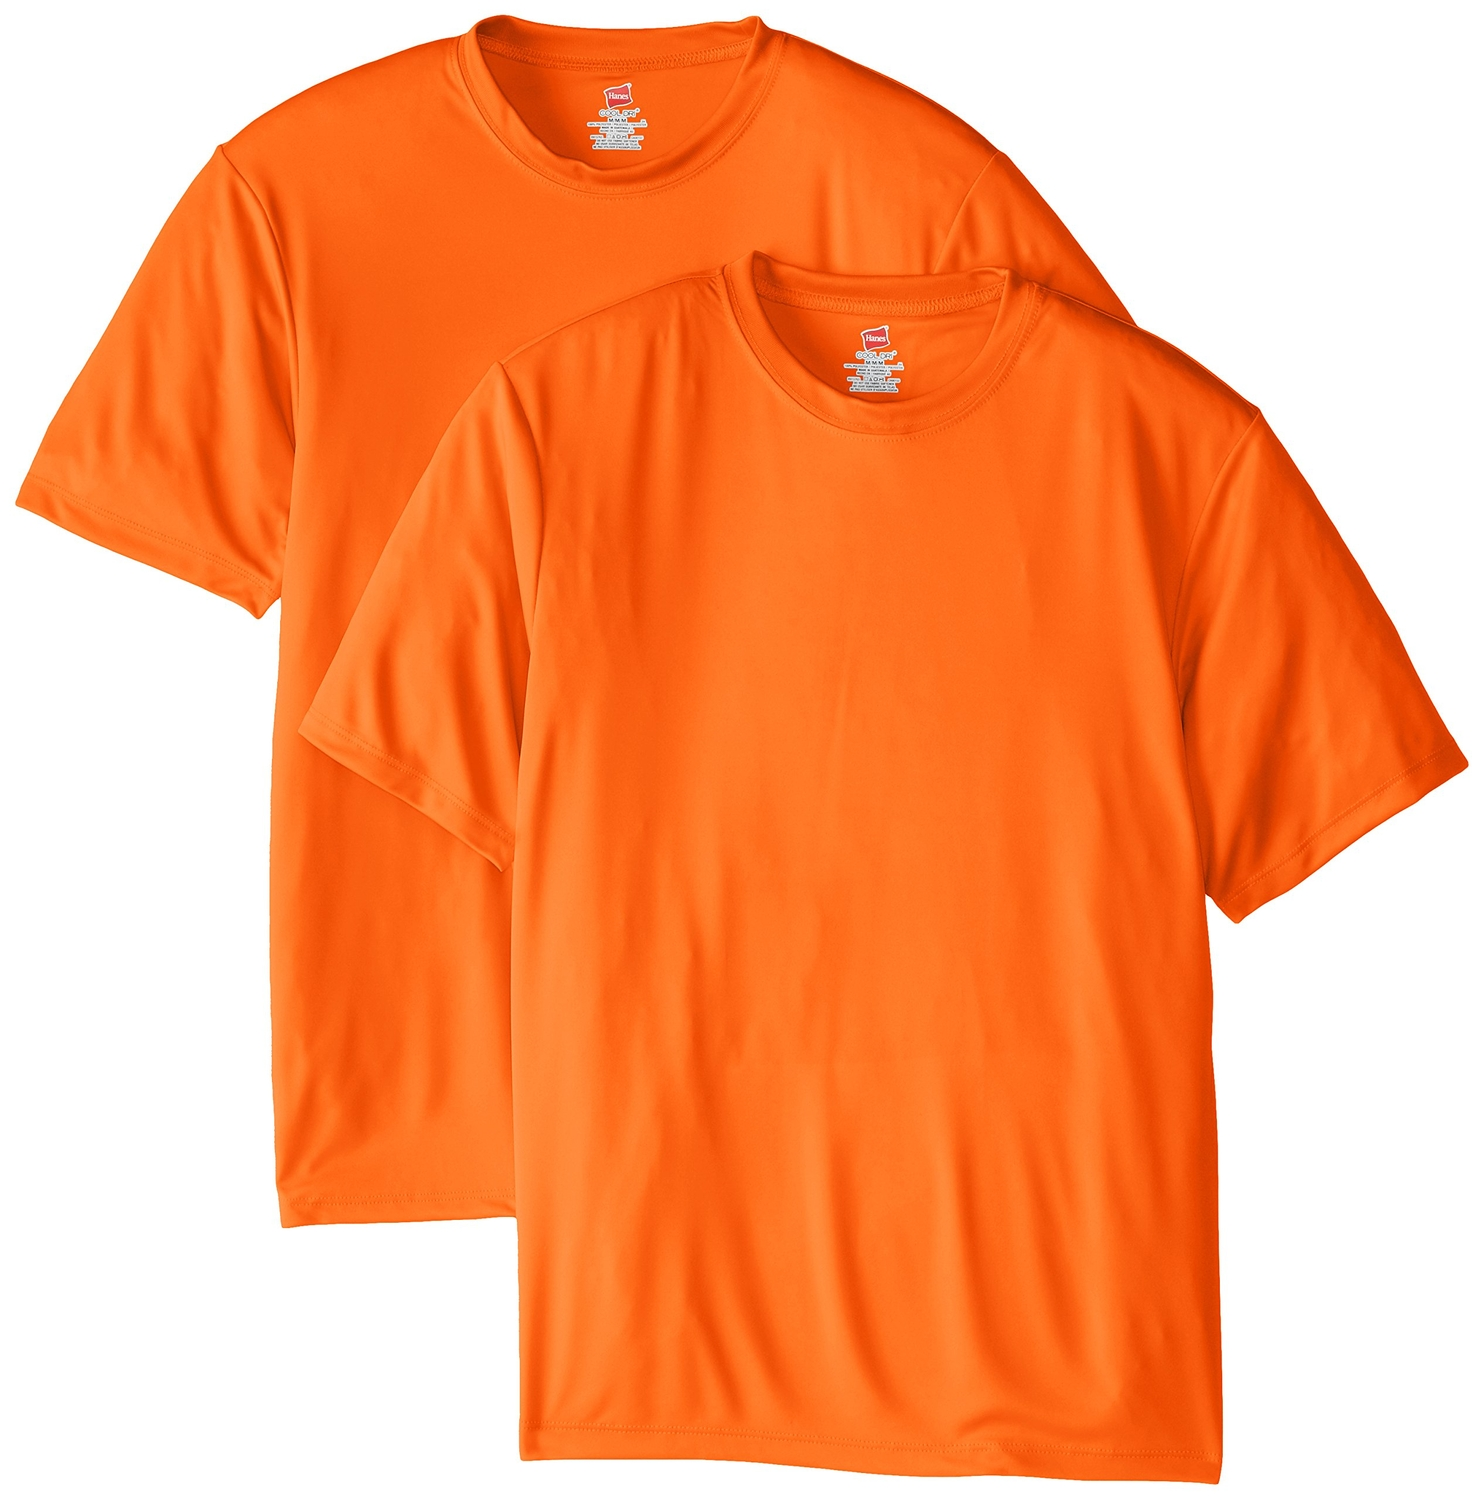 Bulk T-Shirts Assorted T-Shirts: Pack % Cotton Crew Neck T-Shirts - Extended Sizes Your cost starting at $ a T-Shirt Buy in the bulk lot ( T-Shirts) variety of colors & sizes. % Cotton pre-shrunk with high quality material. Sizes: Small, Medium, Large, XL 2XL(XXL), 3XL(XXXL).